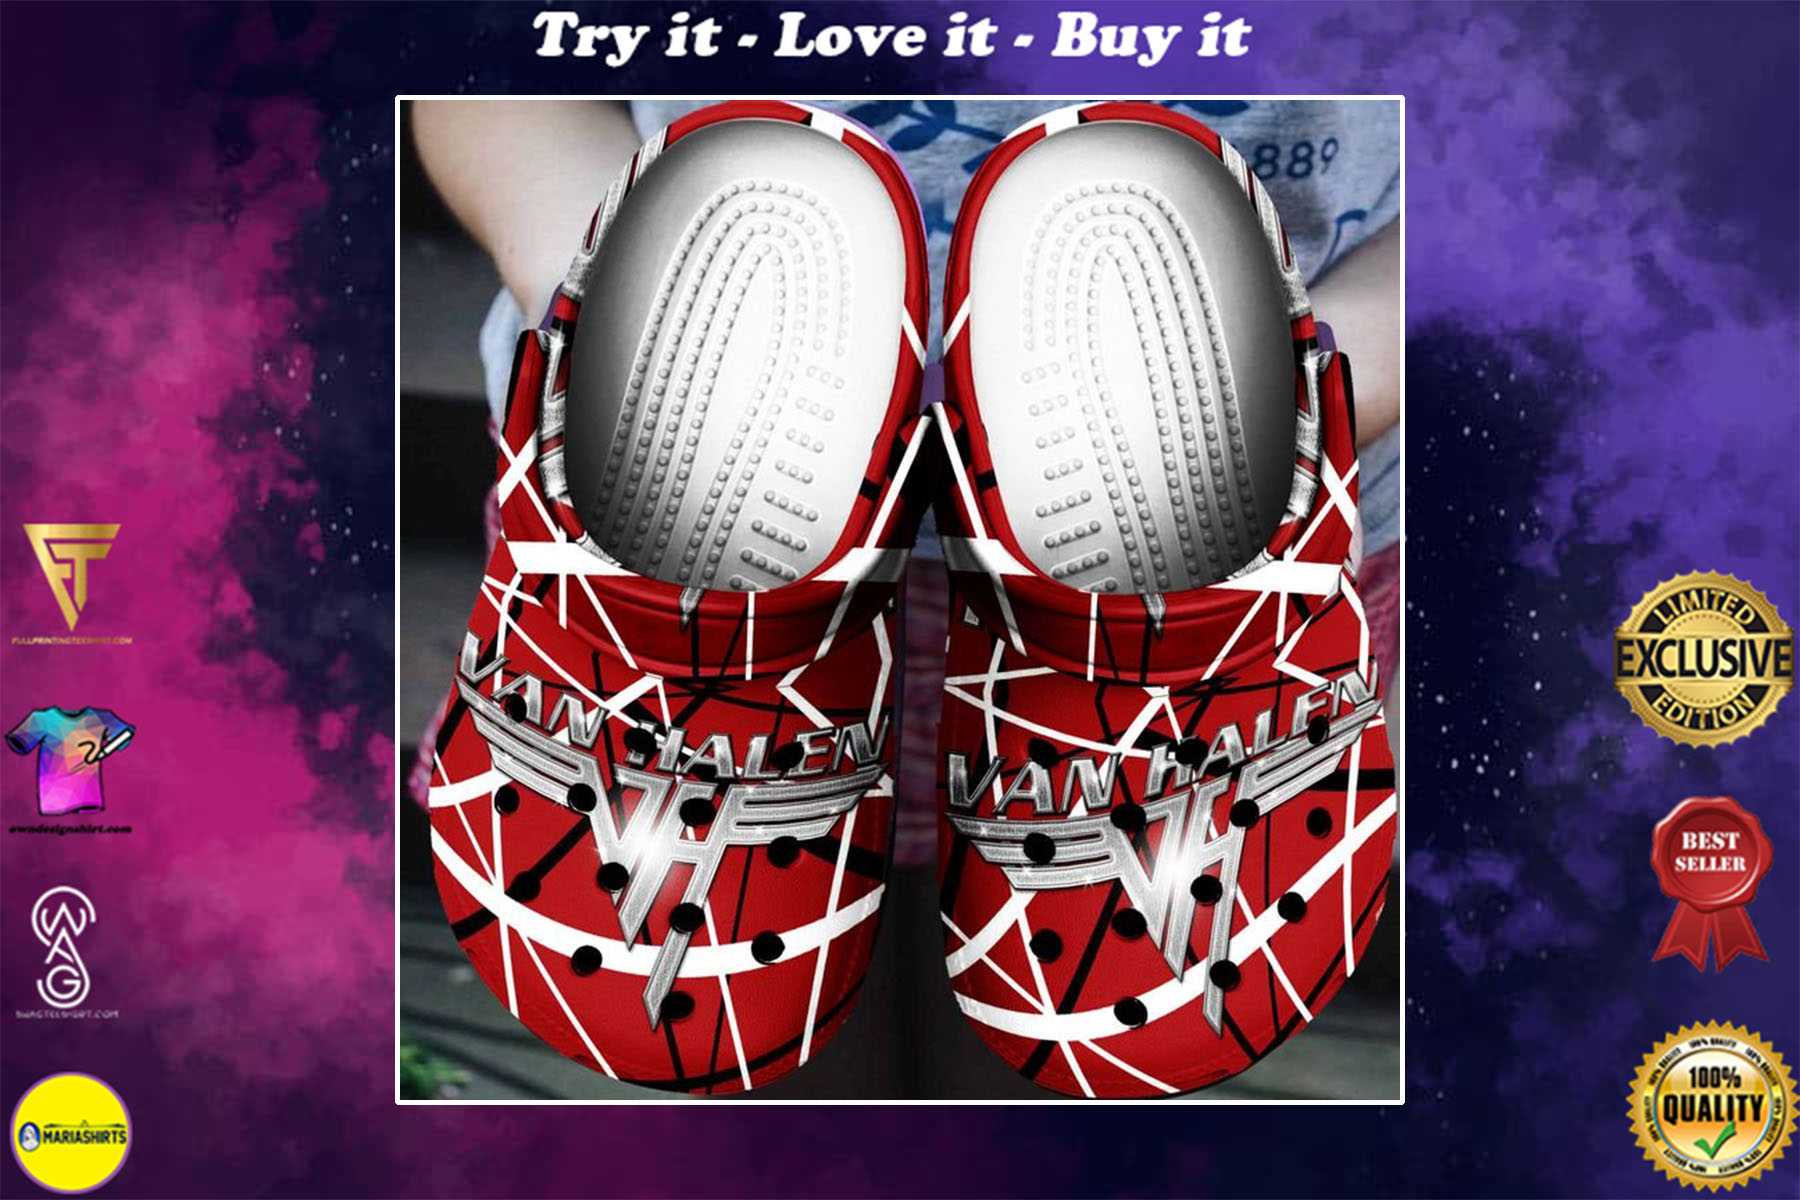 [special edition] best of both worlds a tribute to van halen crocs shoes - maria